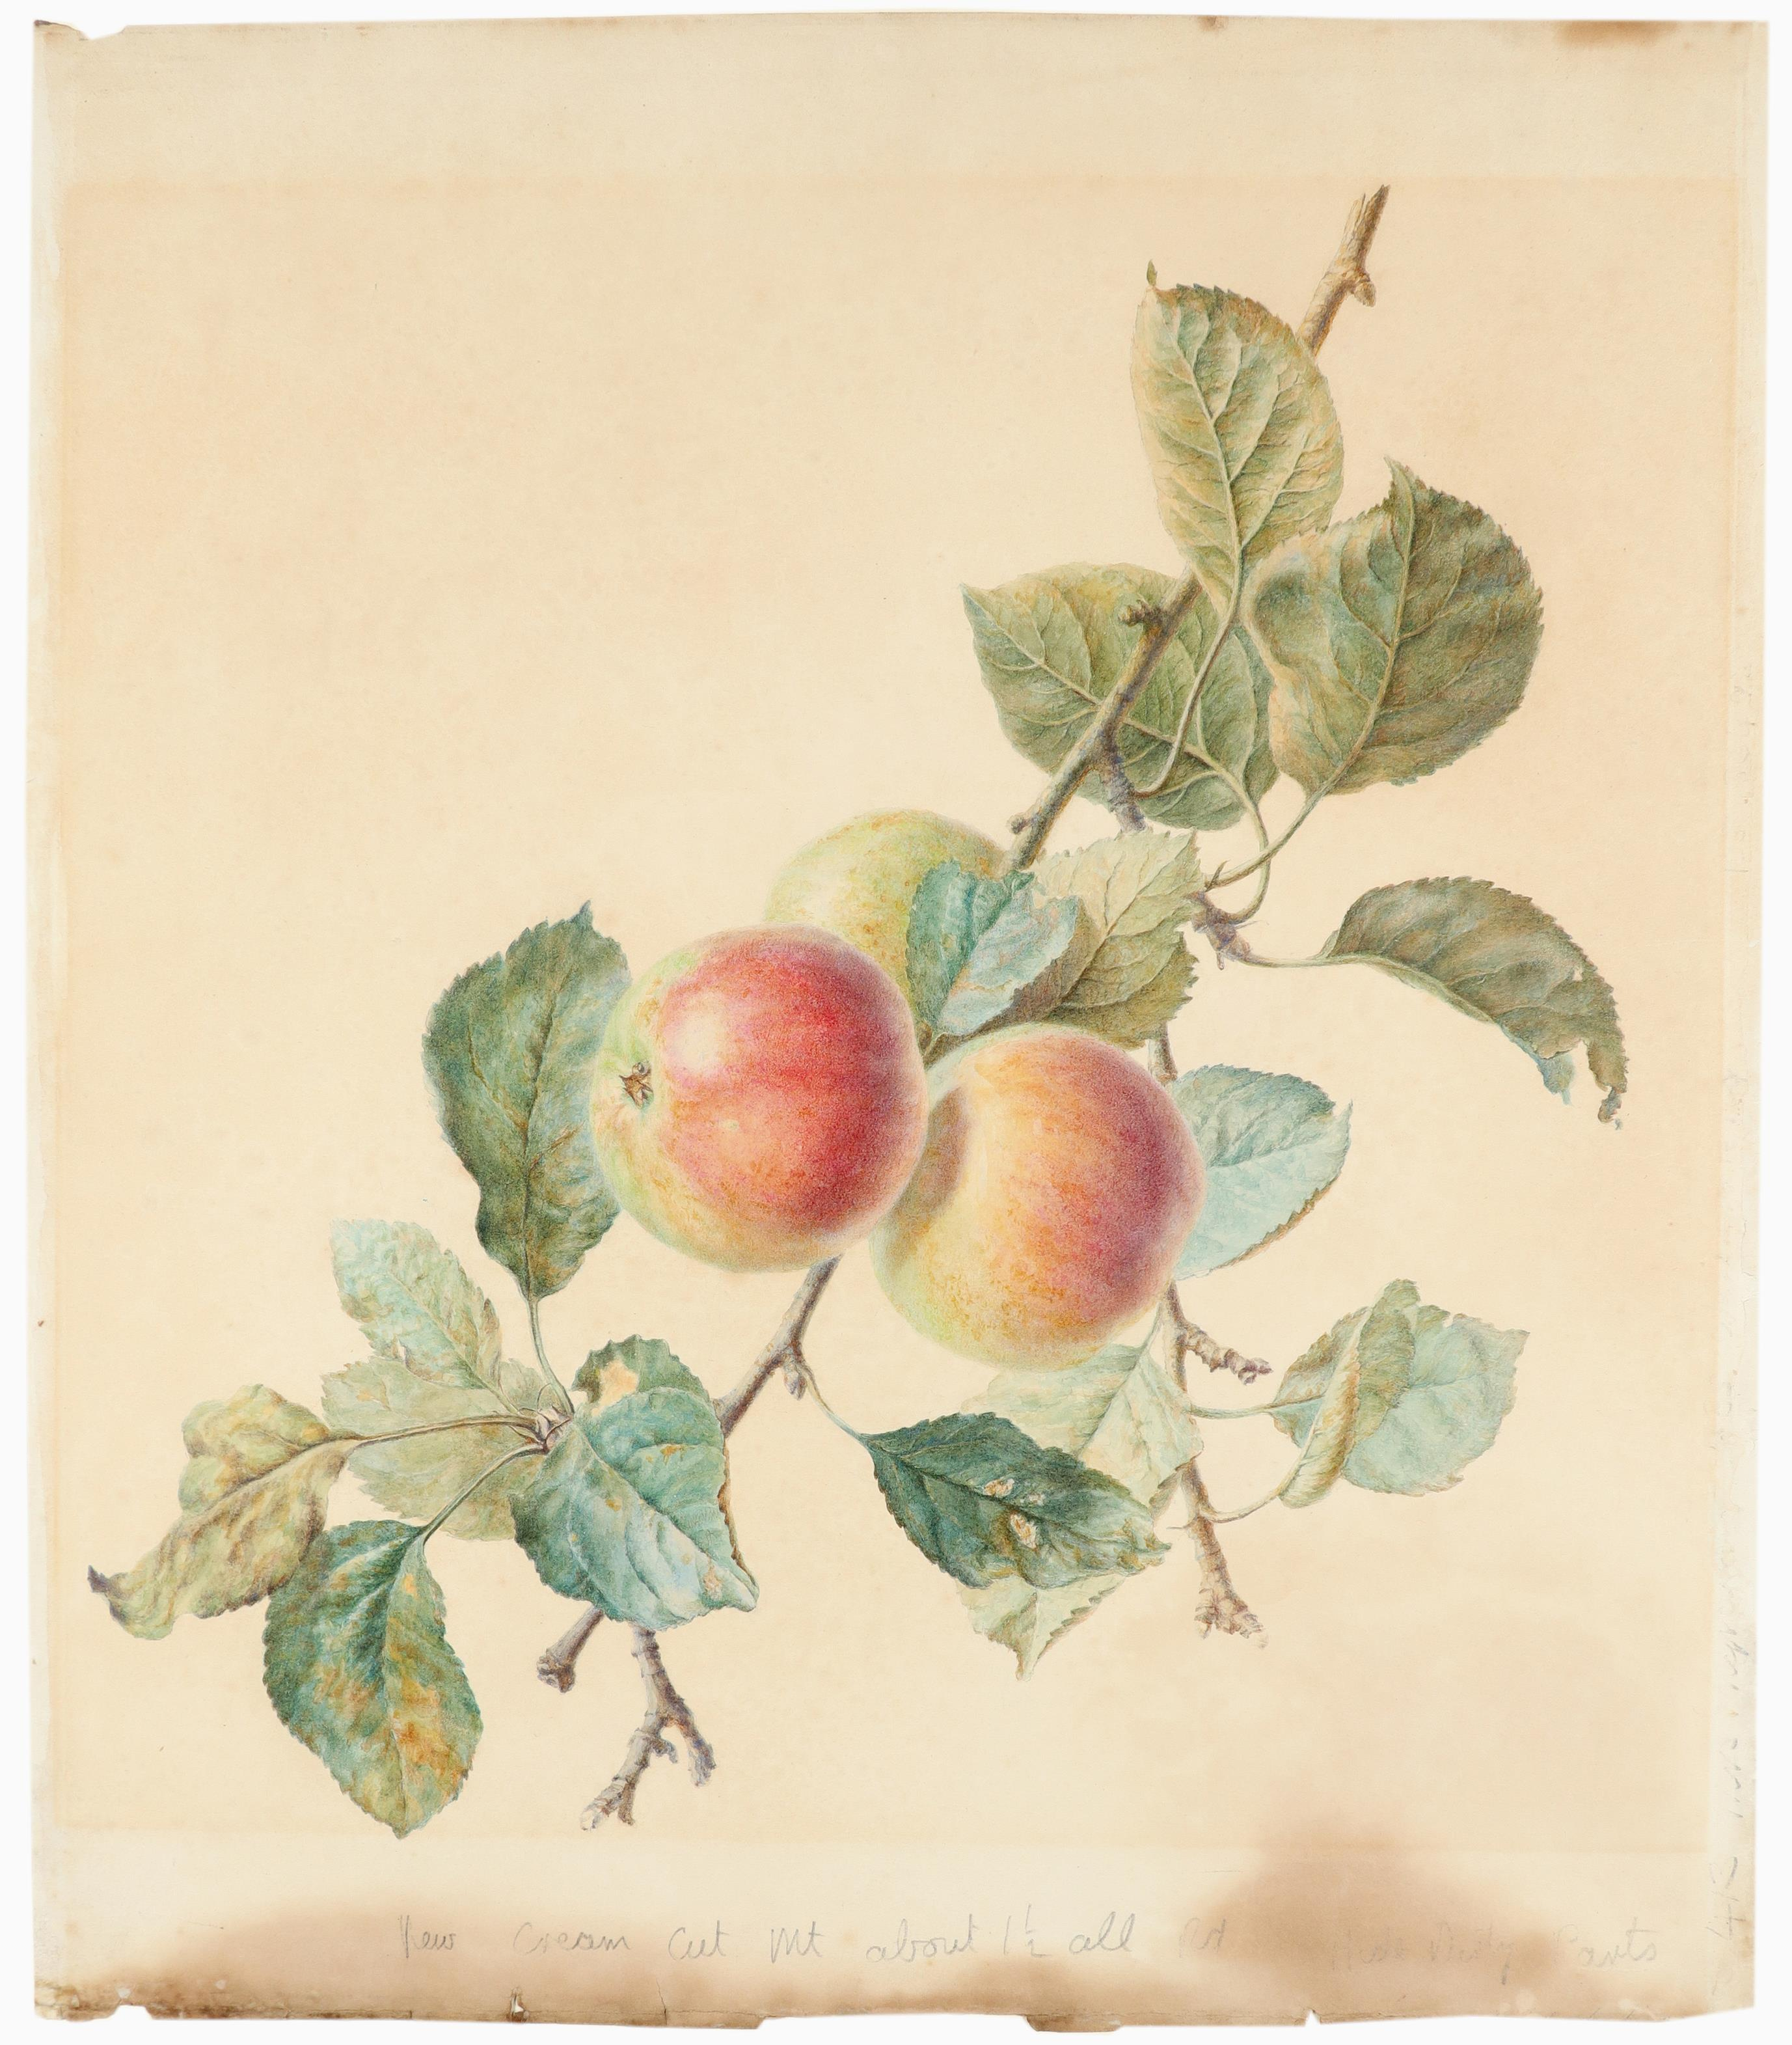 Attributed to James Sillett (1764-1840) Study of apples Watercolour 48 x 42.4cm; 19 x 17¾in Unframed - Image 2 of 3